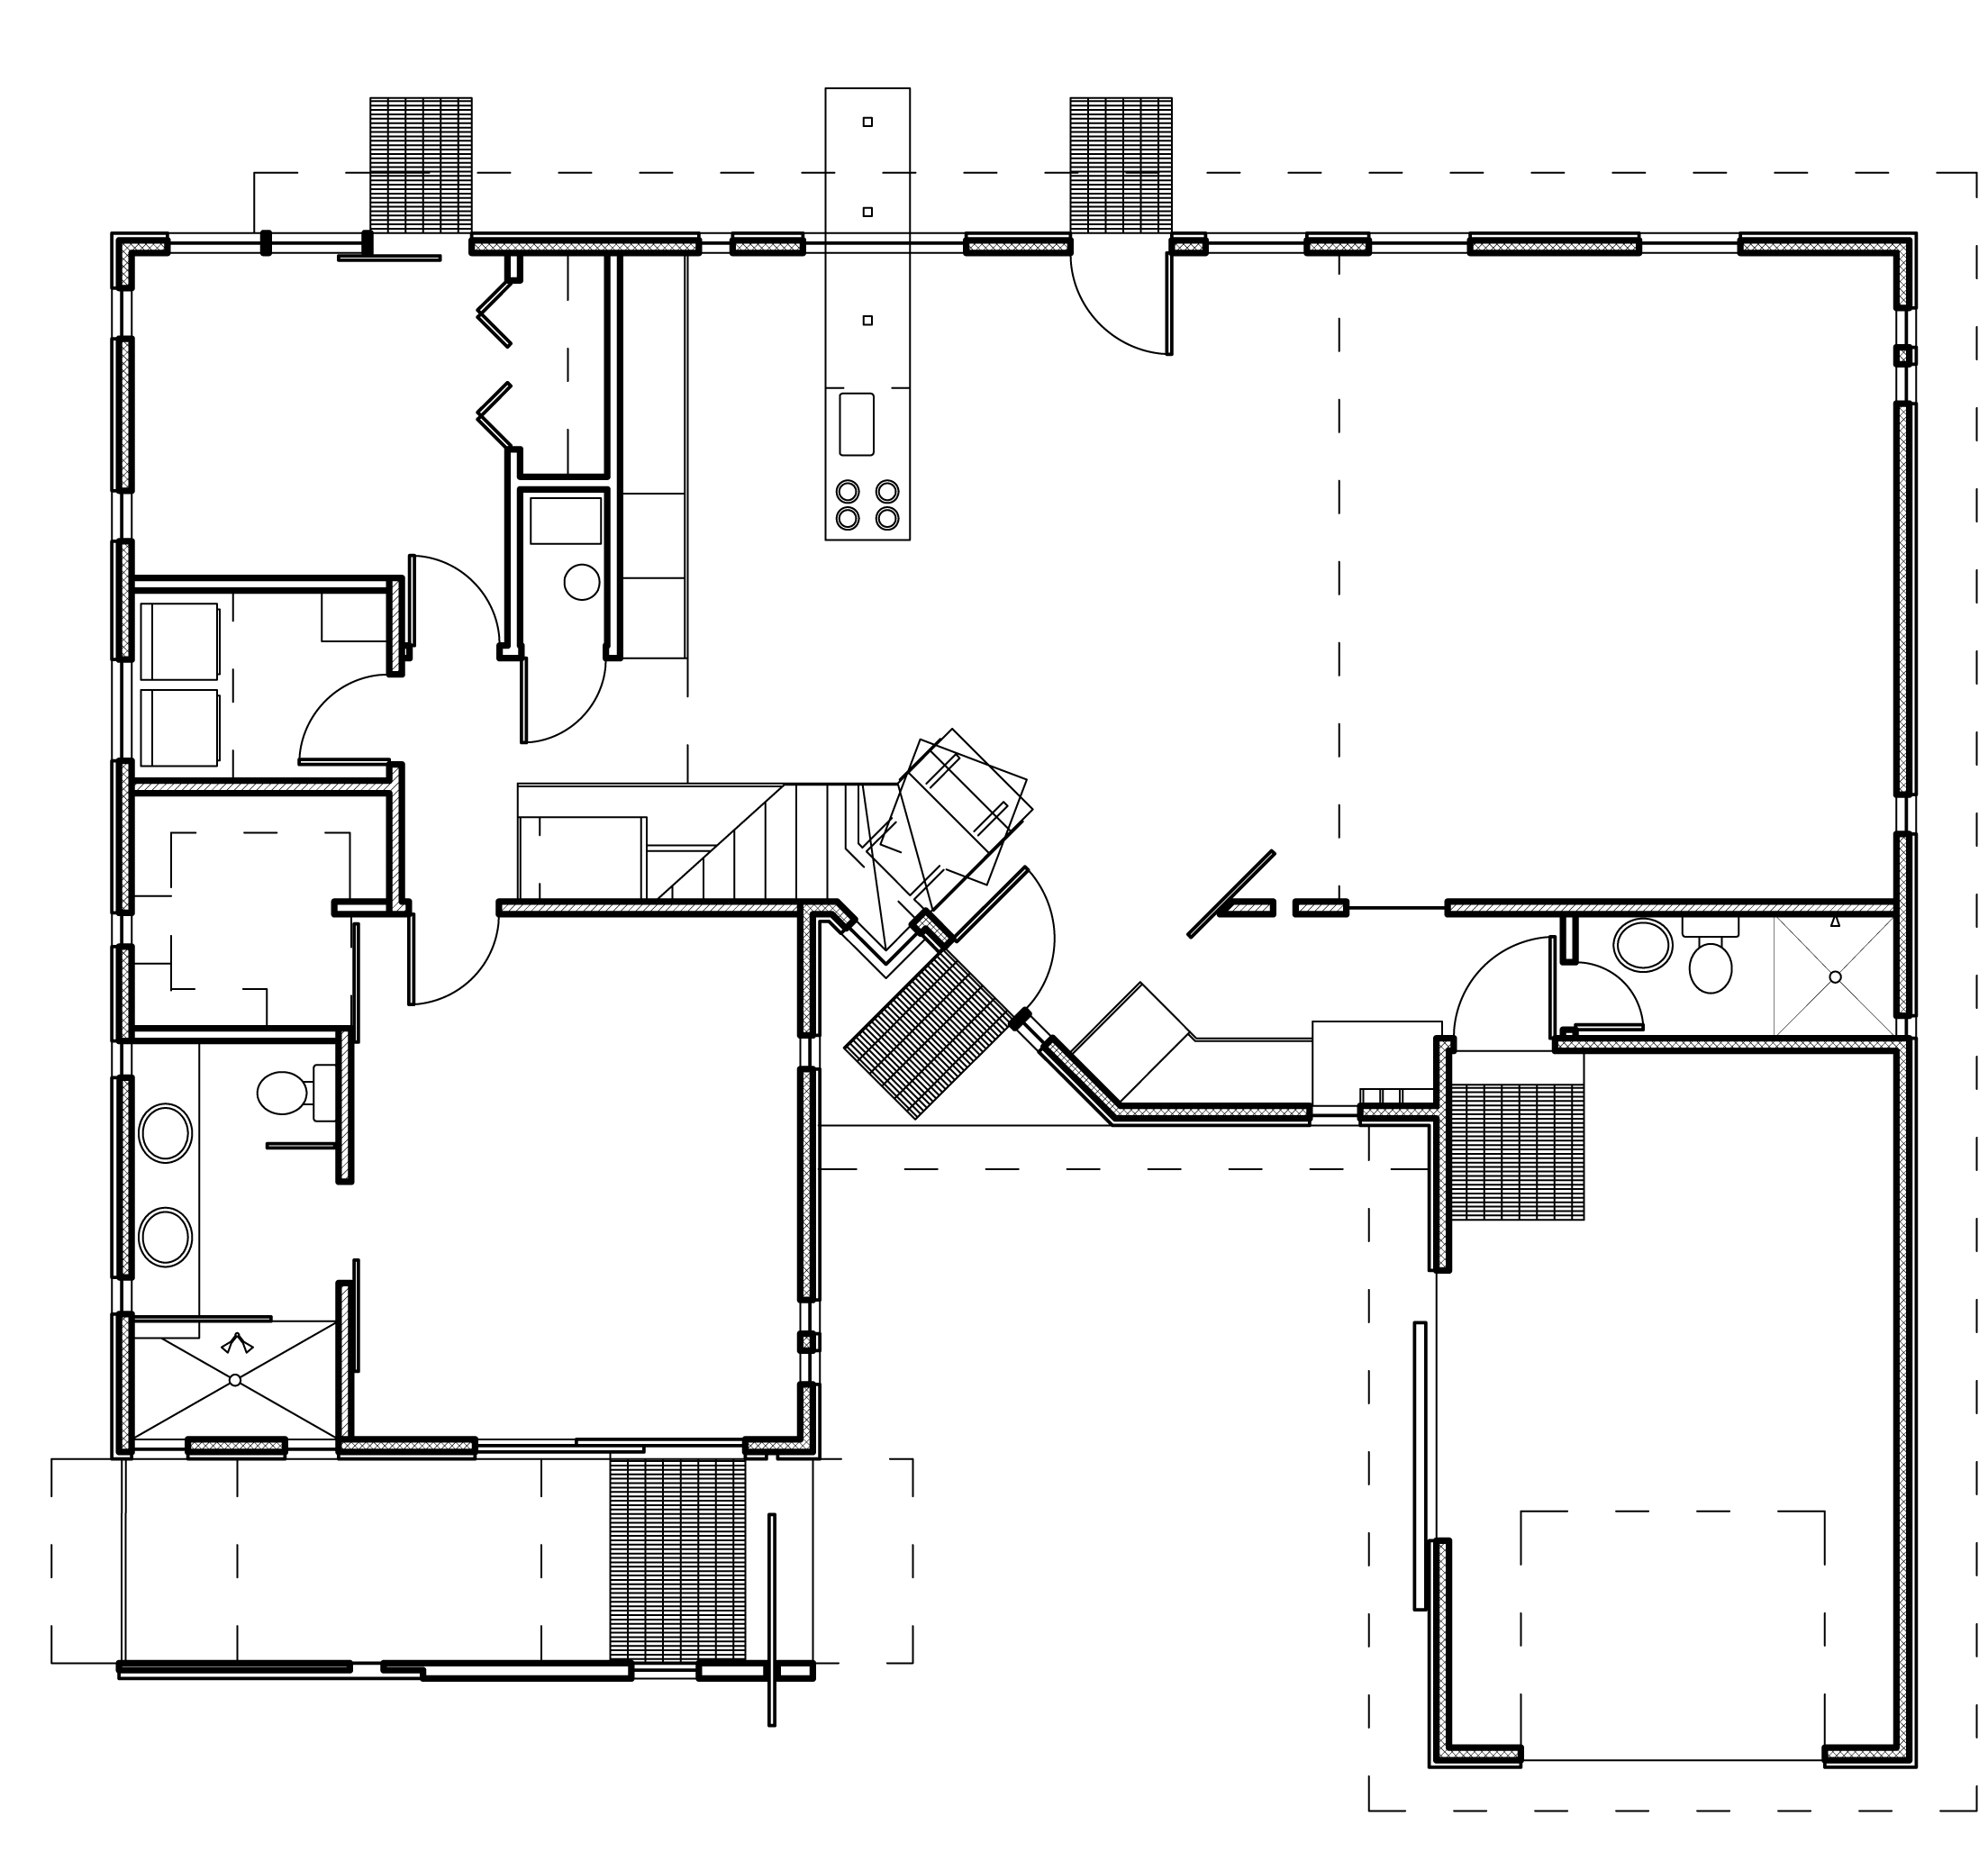 Simple Modern House Plans Displaying 6 Images For Simple Modern House